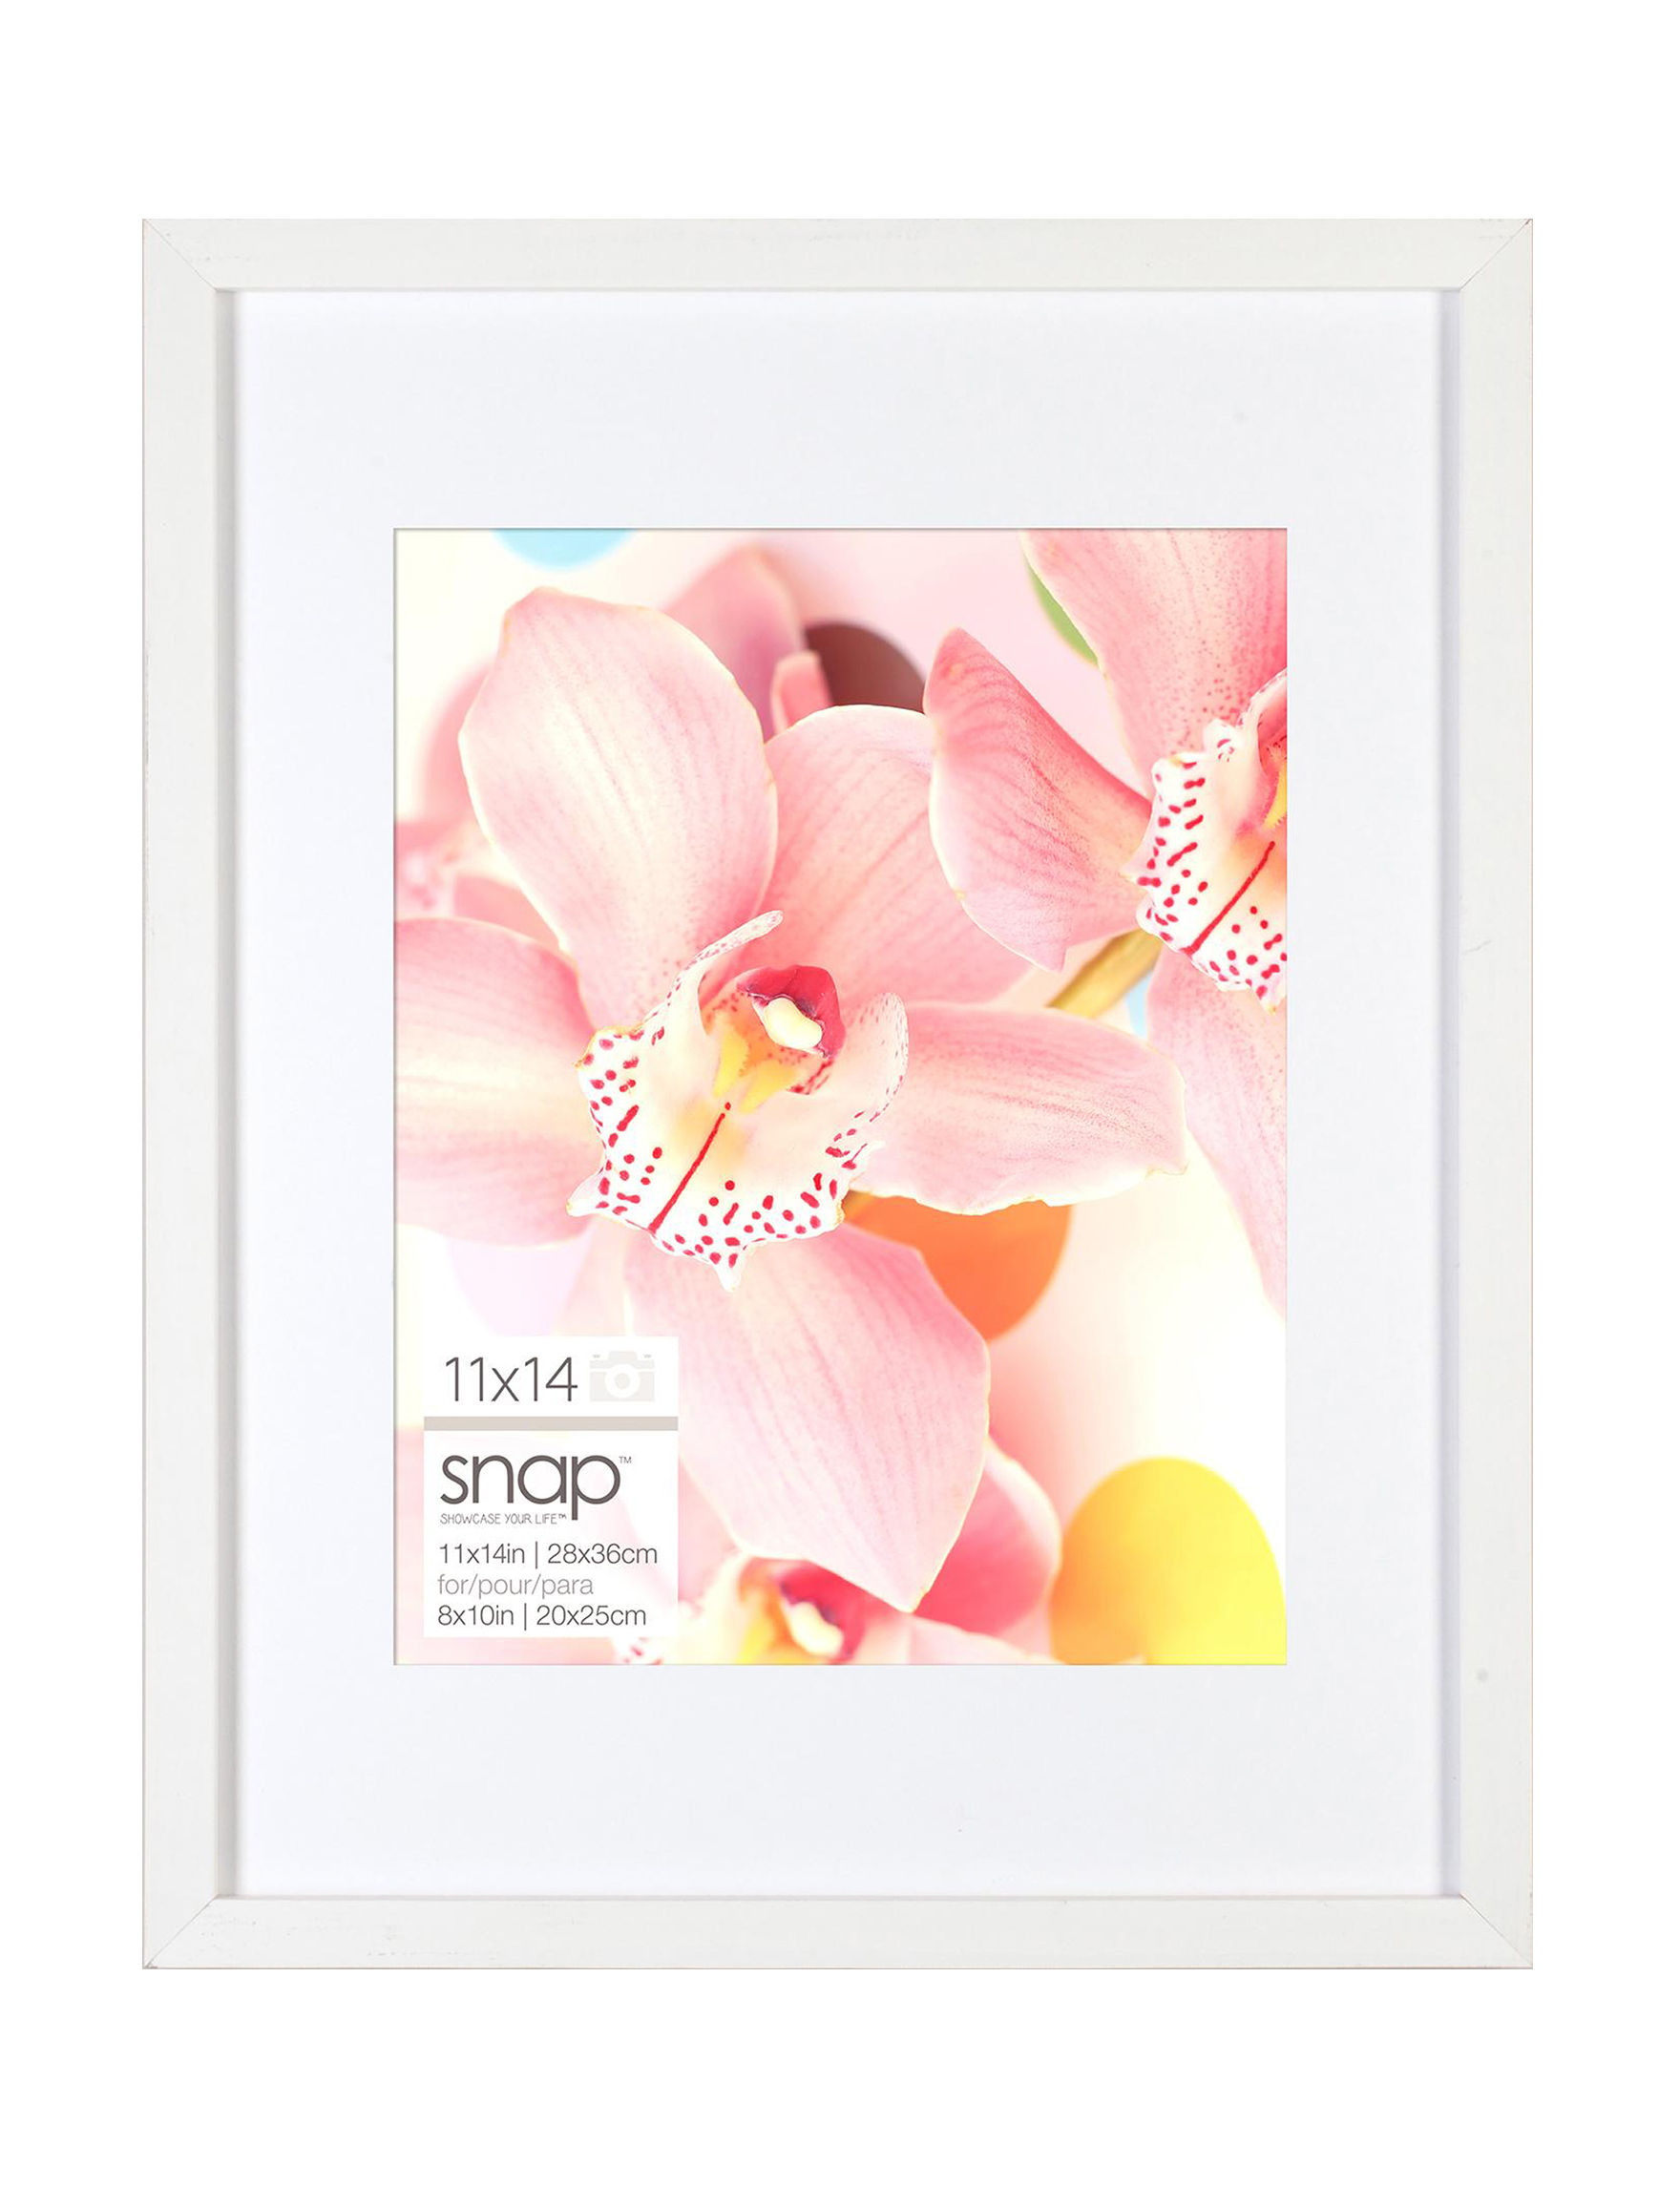 Snap White Frames & Shadow Boxes Home Accents